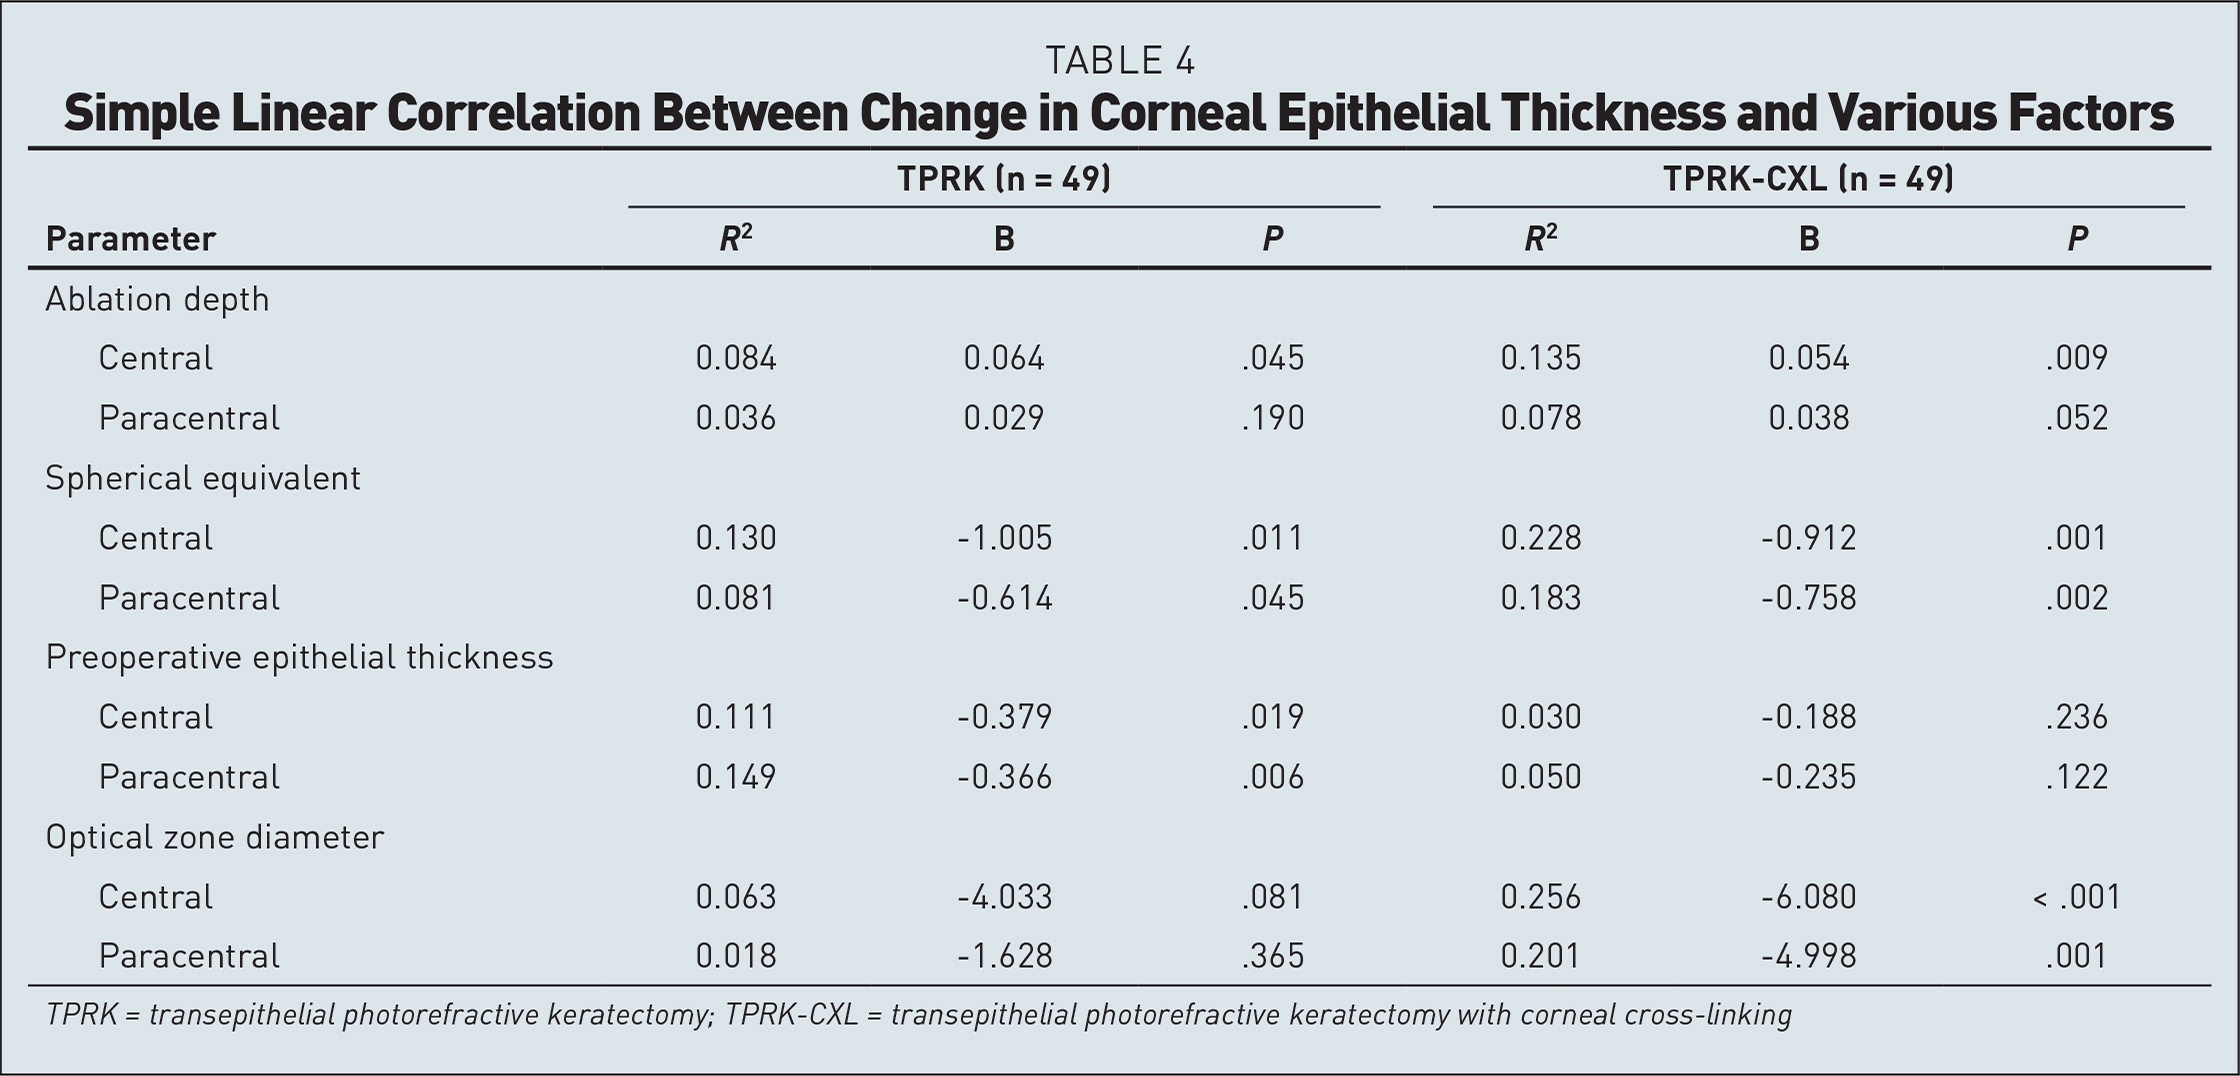 Simple Linear Correlation Between Change in Corneal Epithelial Thickness and Various Factors